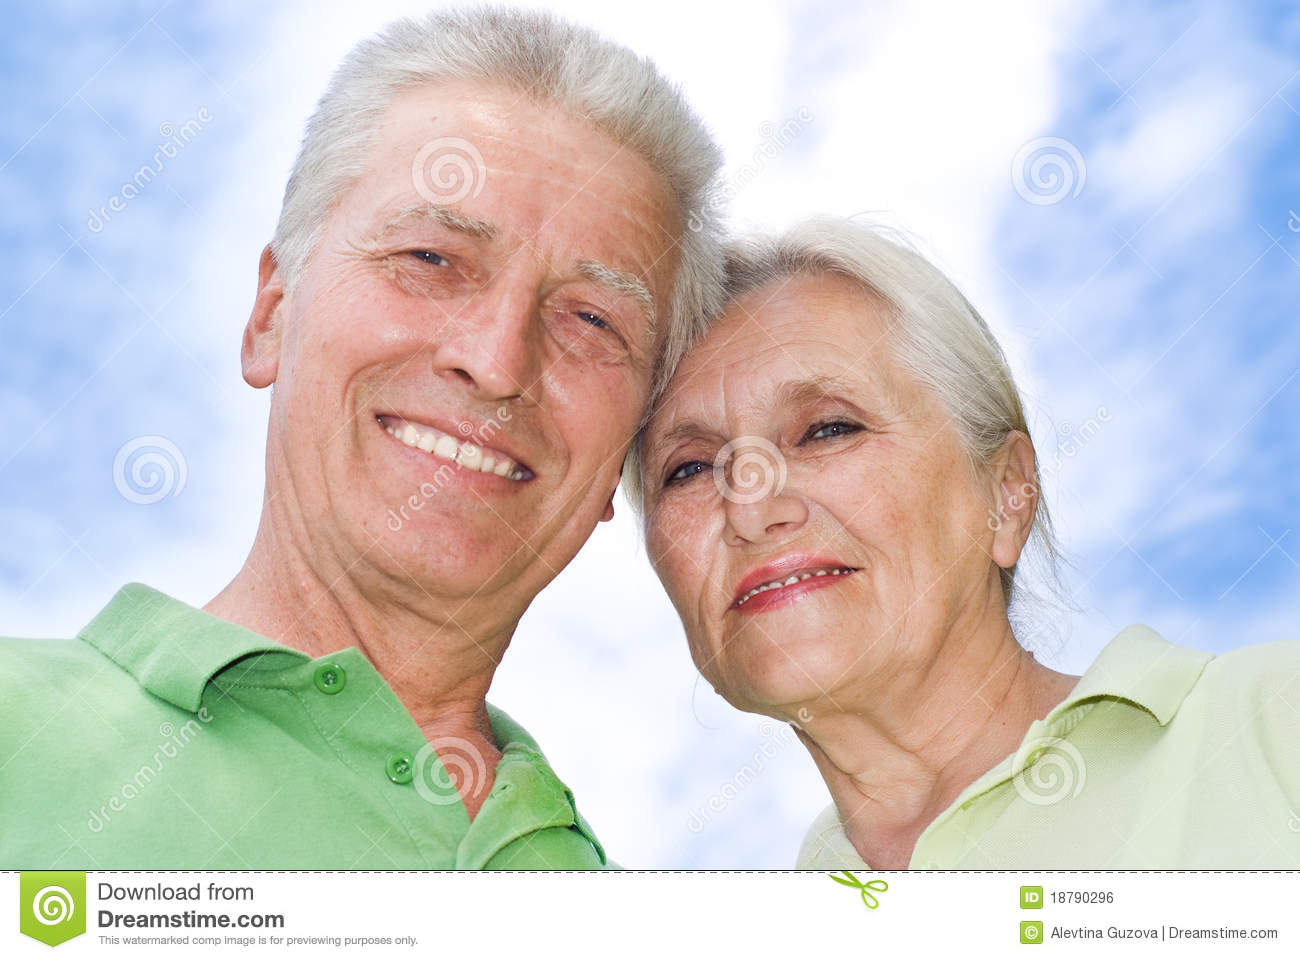 Royalty Free Stock Image  Happy elderly couple parkHappy Elderly Couple